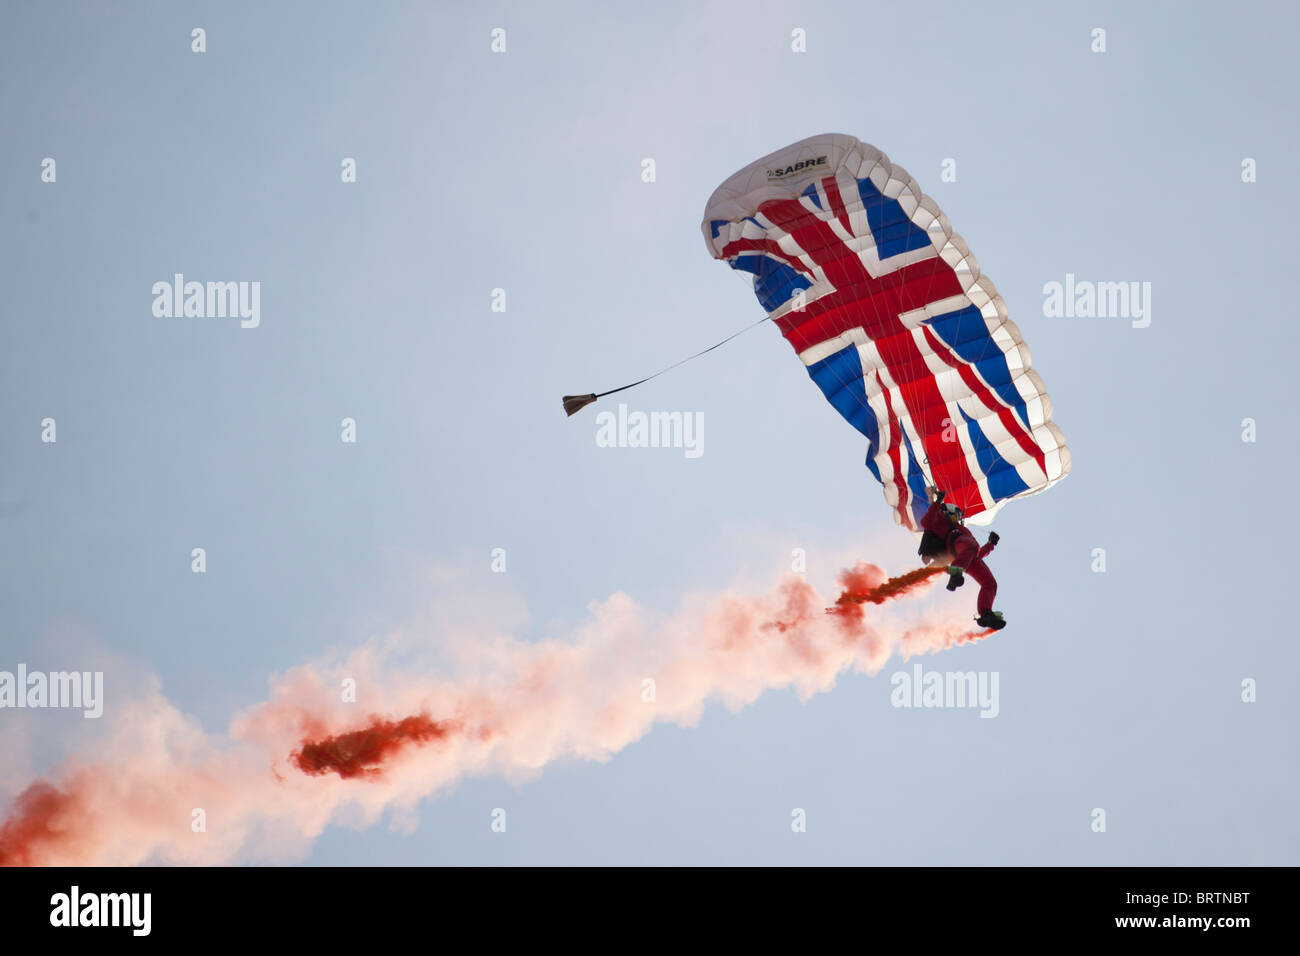 Red Devils bringing in the start flag at Silverstone. - Stock Image